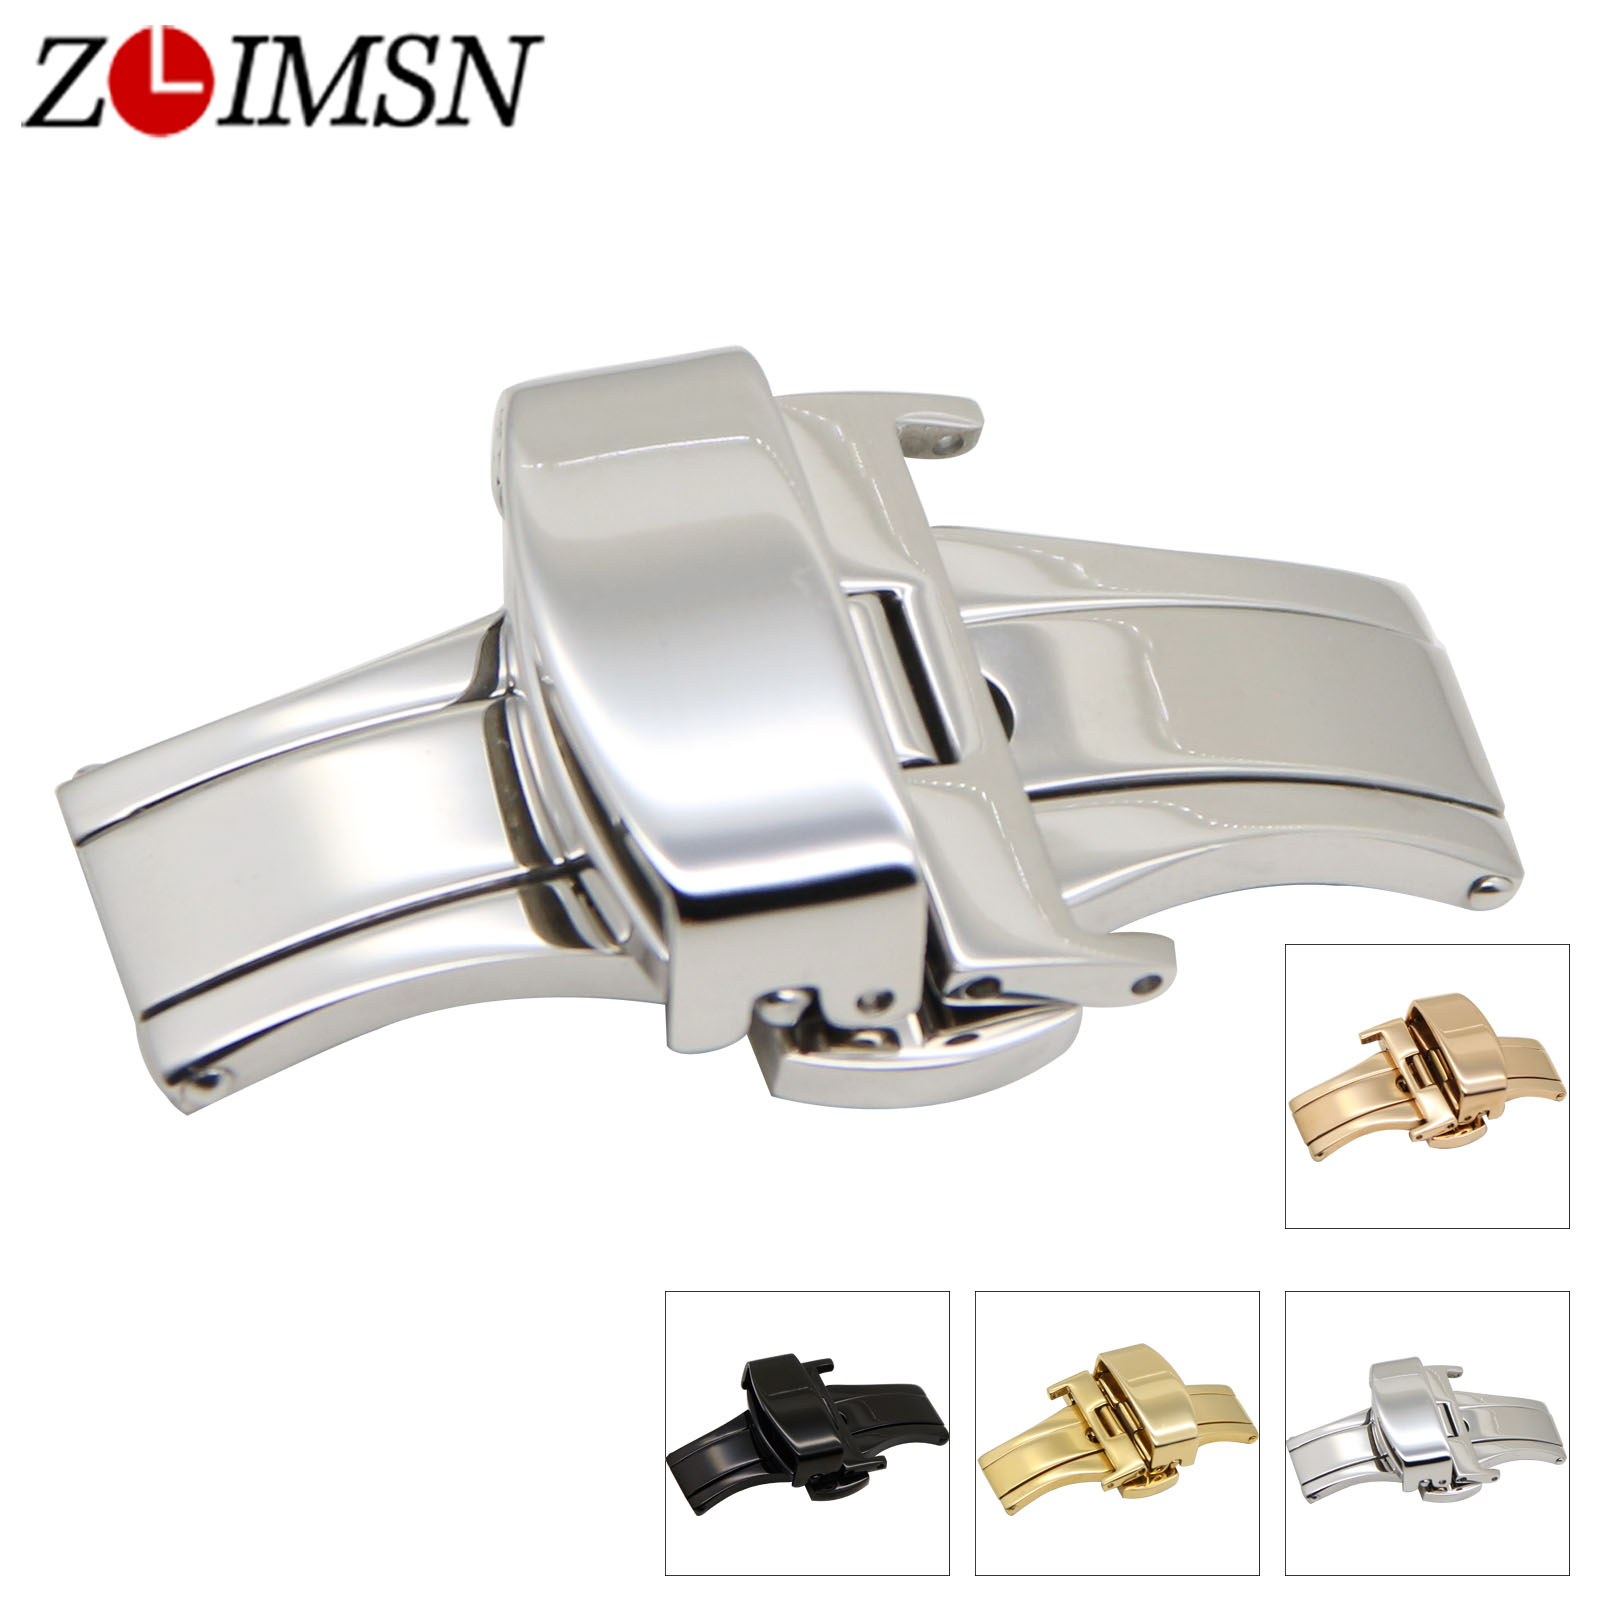 ZLIMSN Wholesale Double Push Button Fold Automatic Butterfly Buckle Watchband Stainless Steel Clasp Relojes Hombre zlimsn 20mm double push button deployment clasp silver gold black rose gold stainless steel watch metal buckle relojes hombre